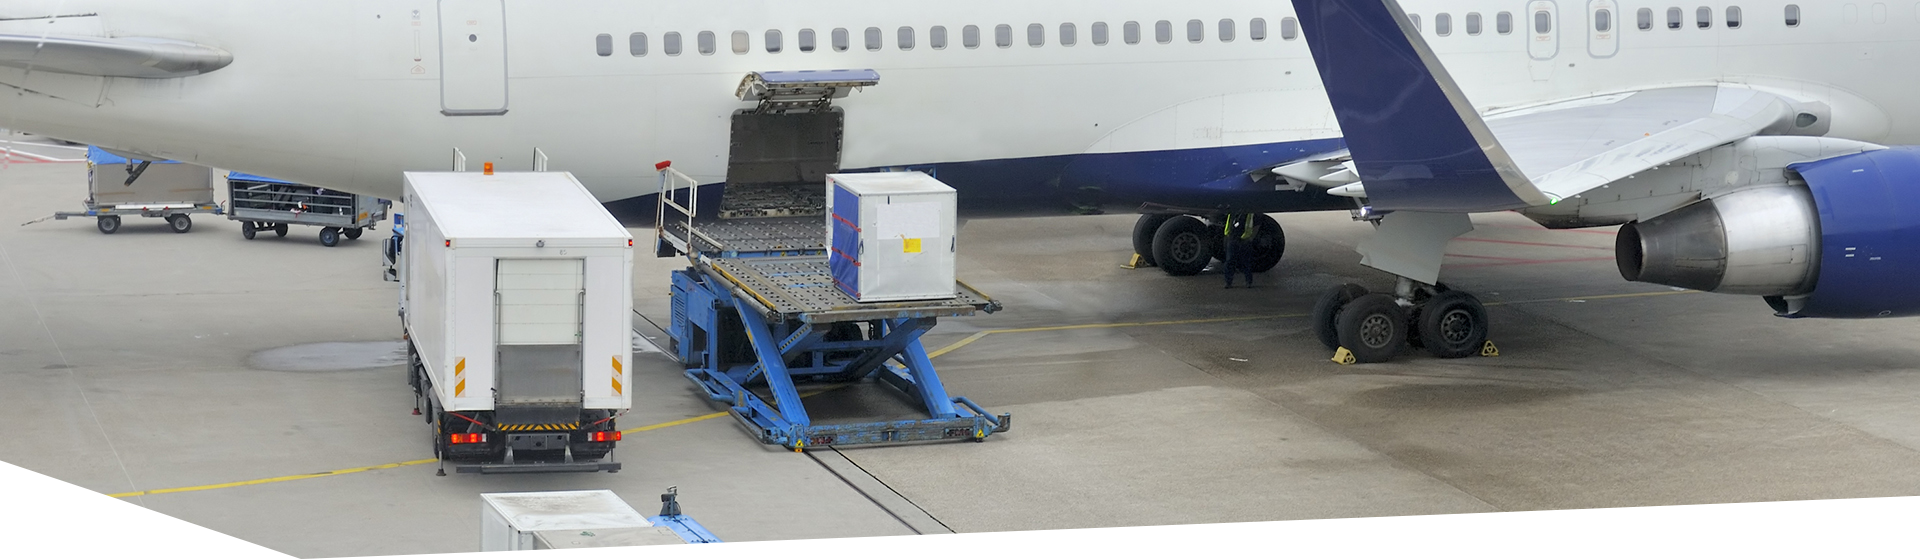 Developing a World-class Cargo Handling System for a Ground-Handling Provider